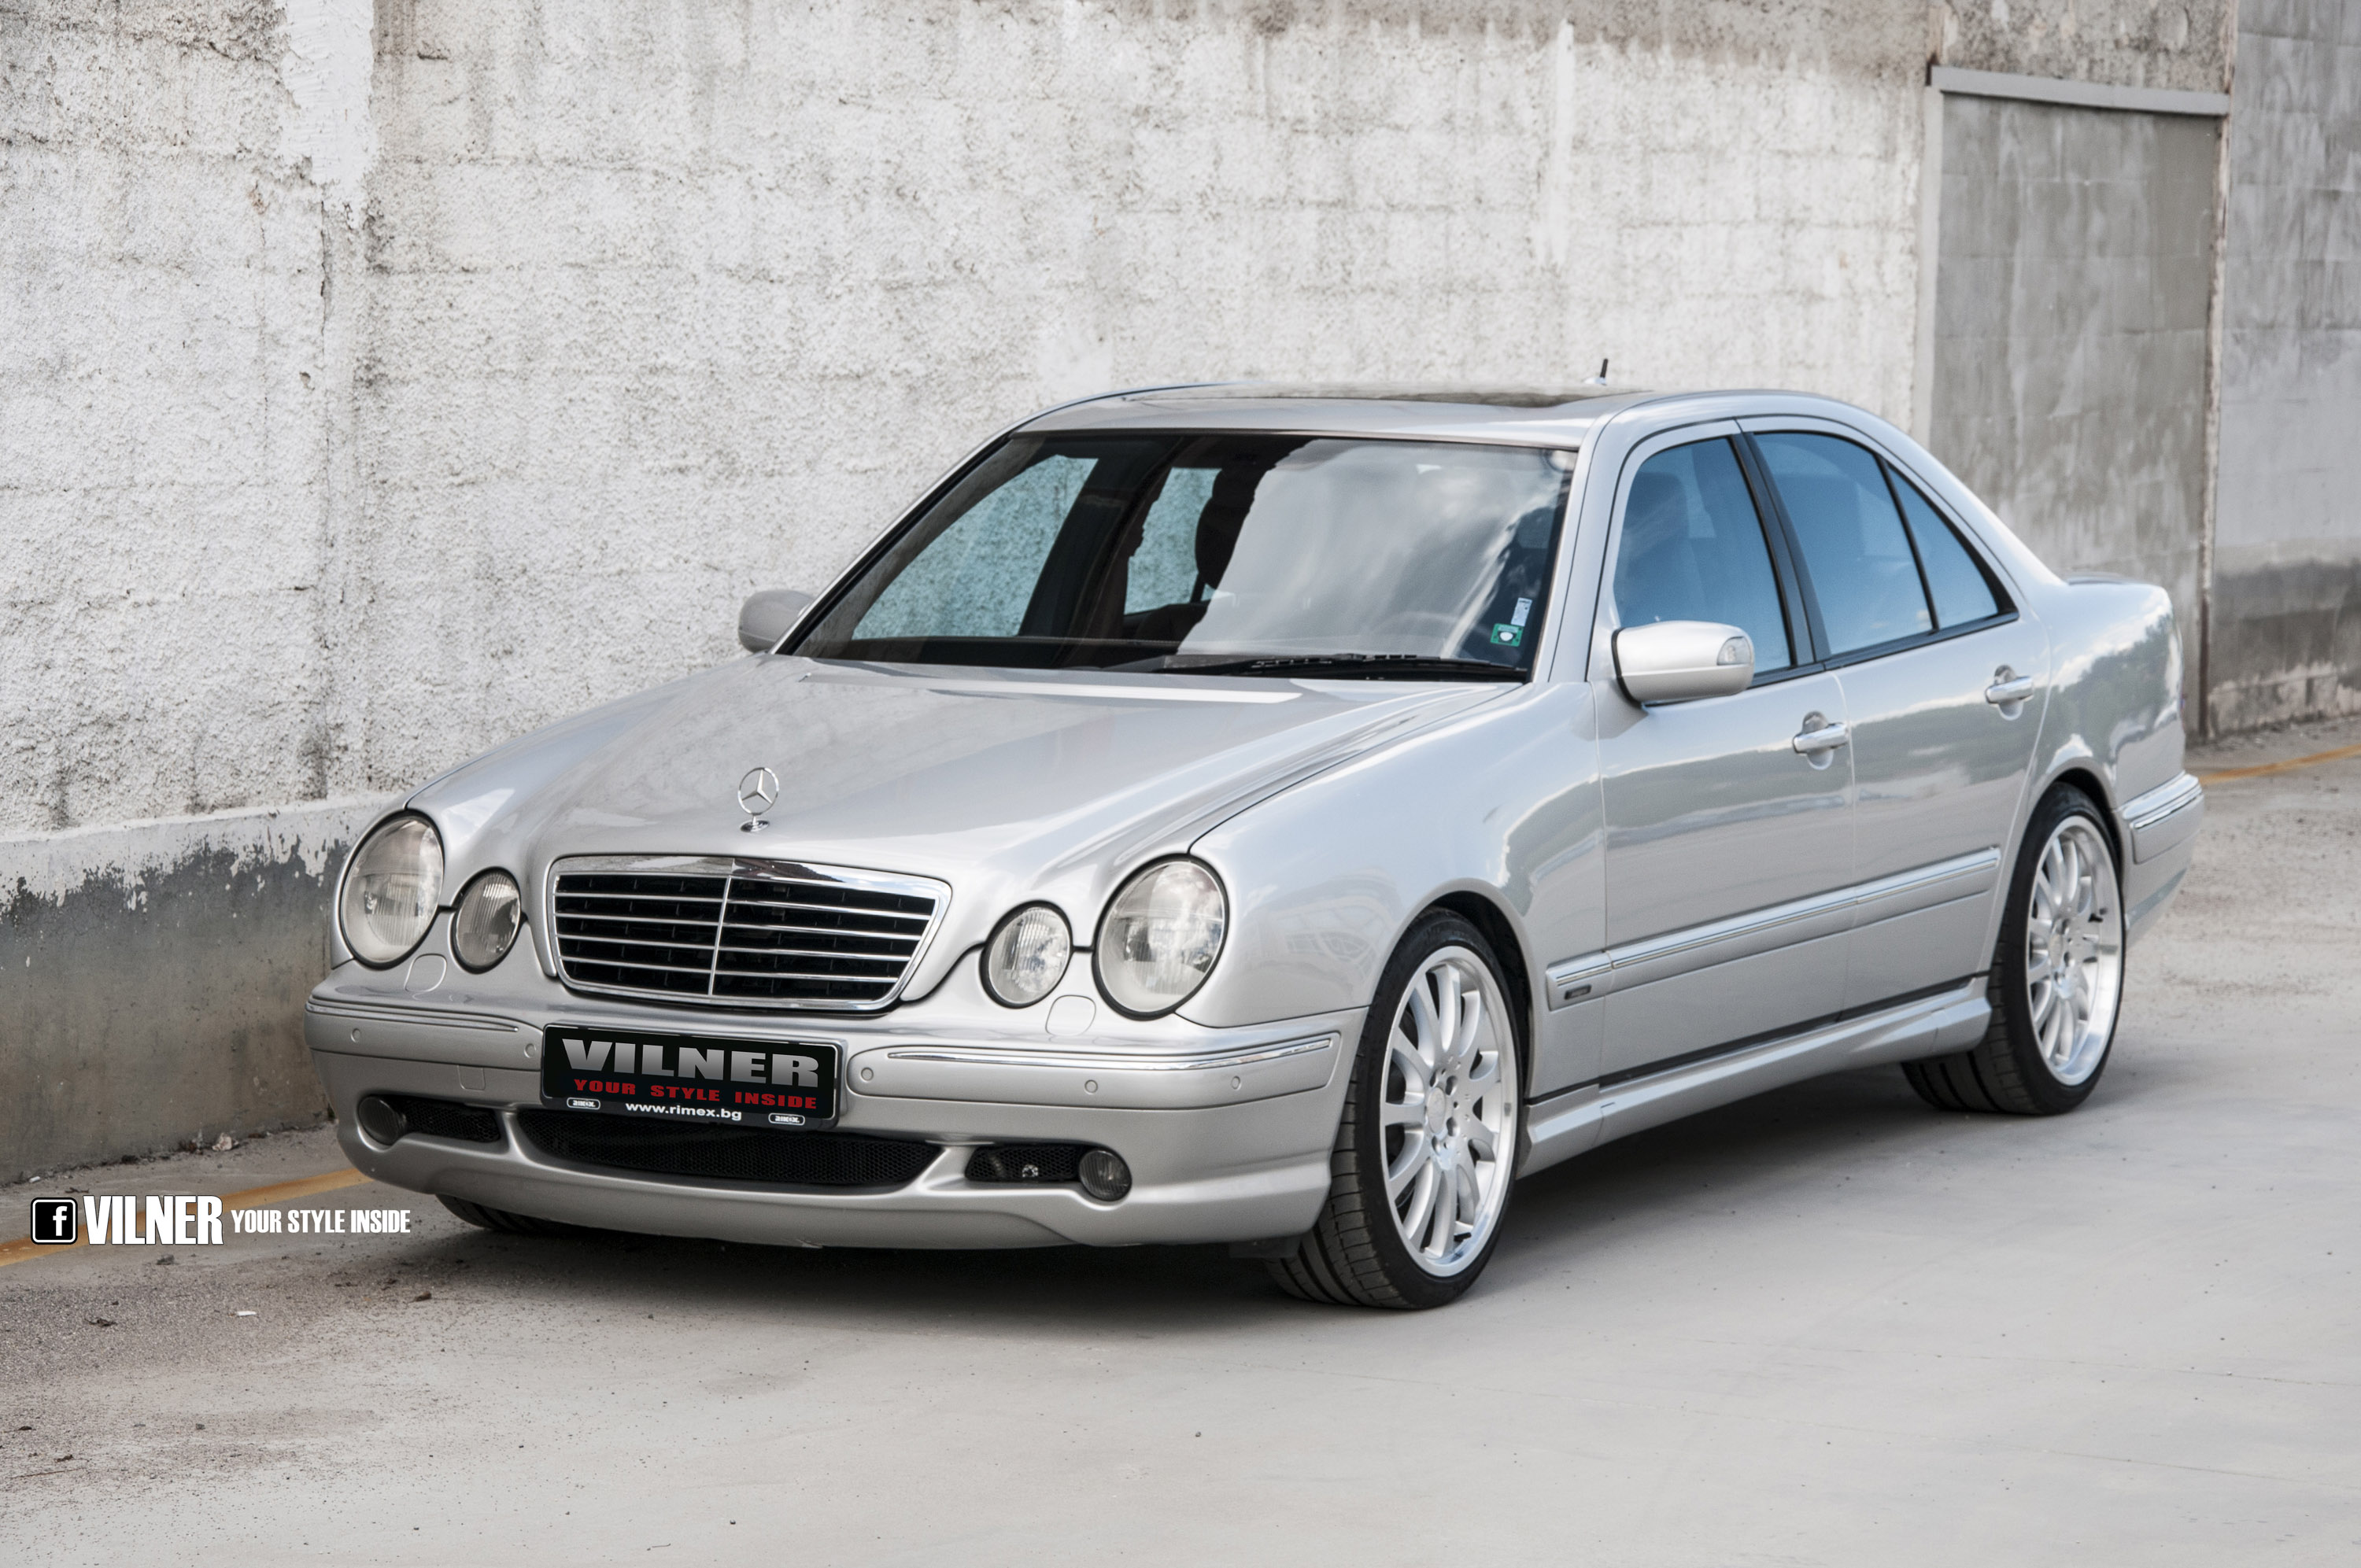 mercedes benz e55 amg 4matic by vilner. Black Bedroom Furniture Sets. Home Design Ideas